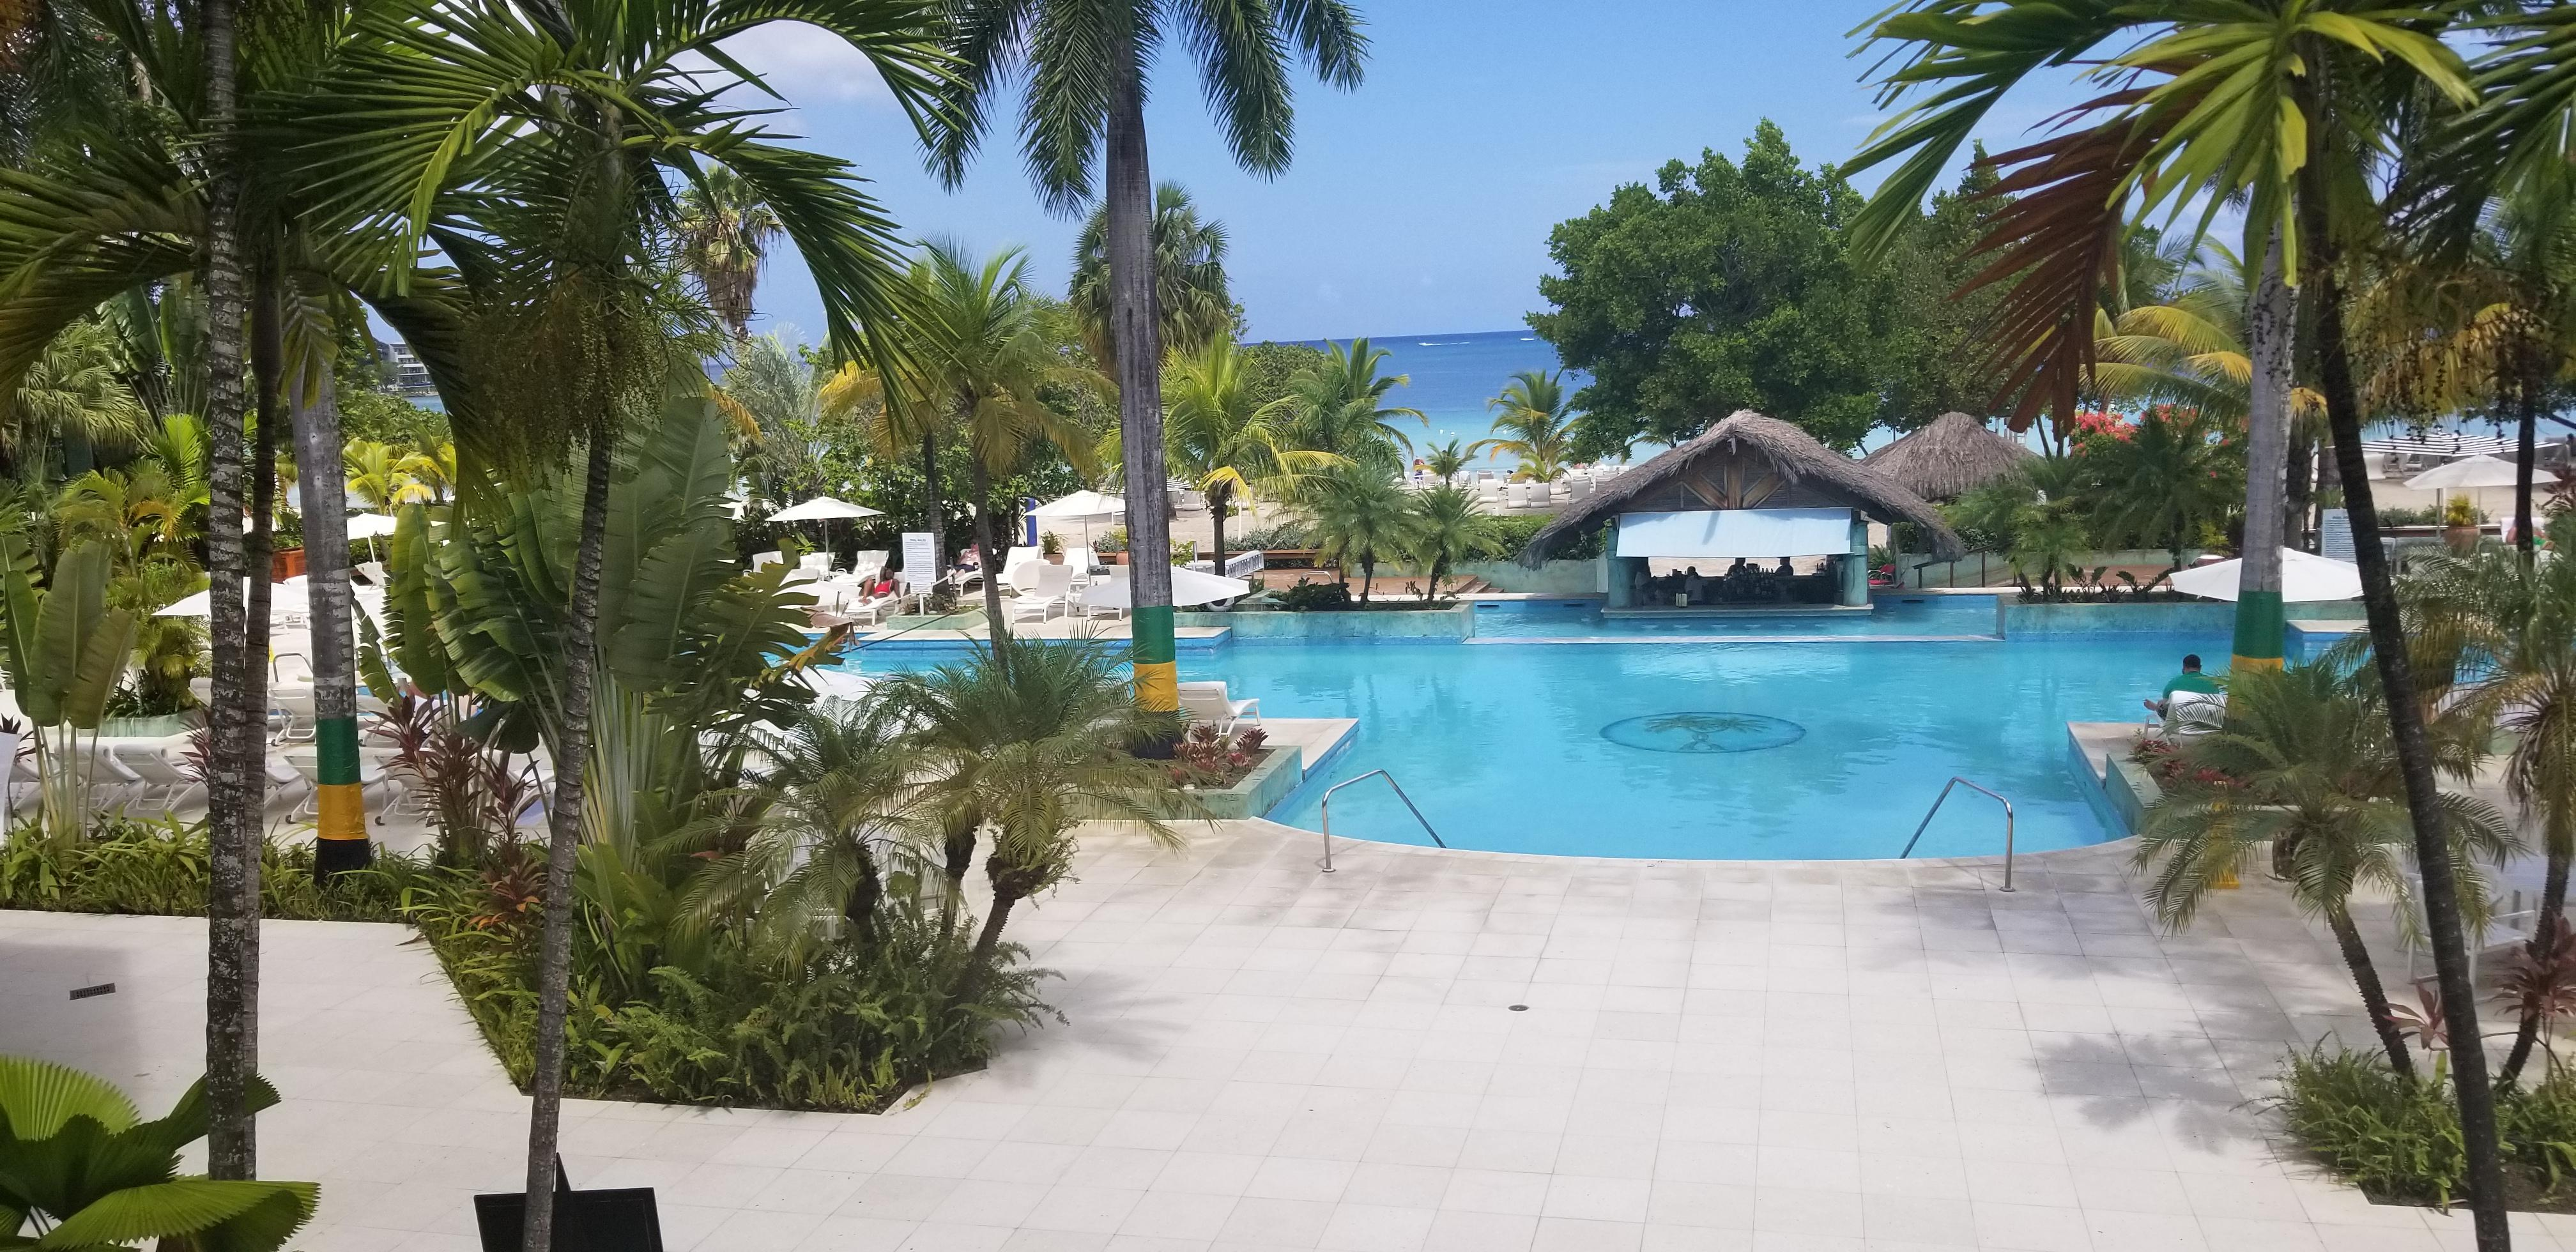 The Caves Hotel, Negril Jamaica | Luxury All-Inclusive